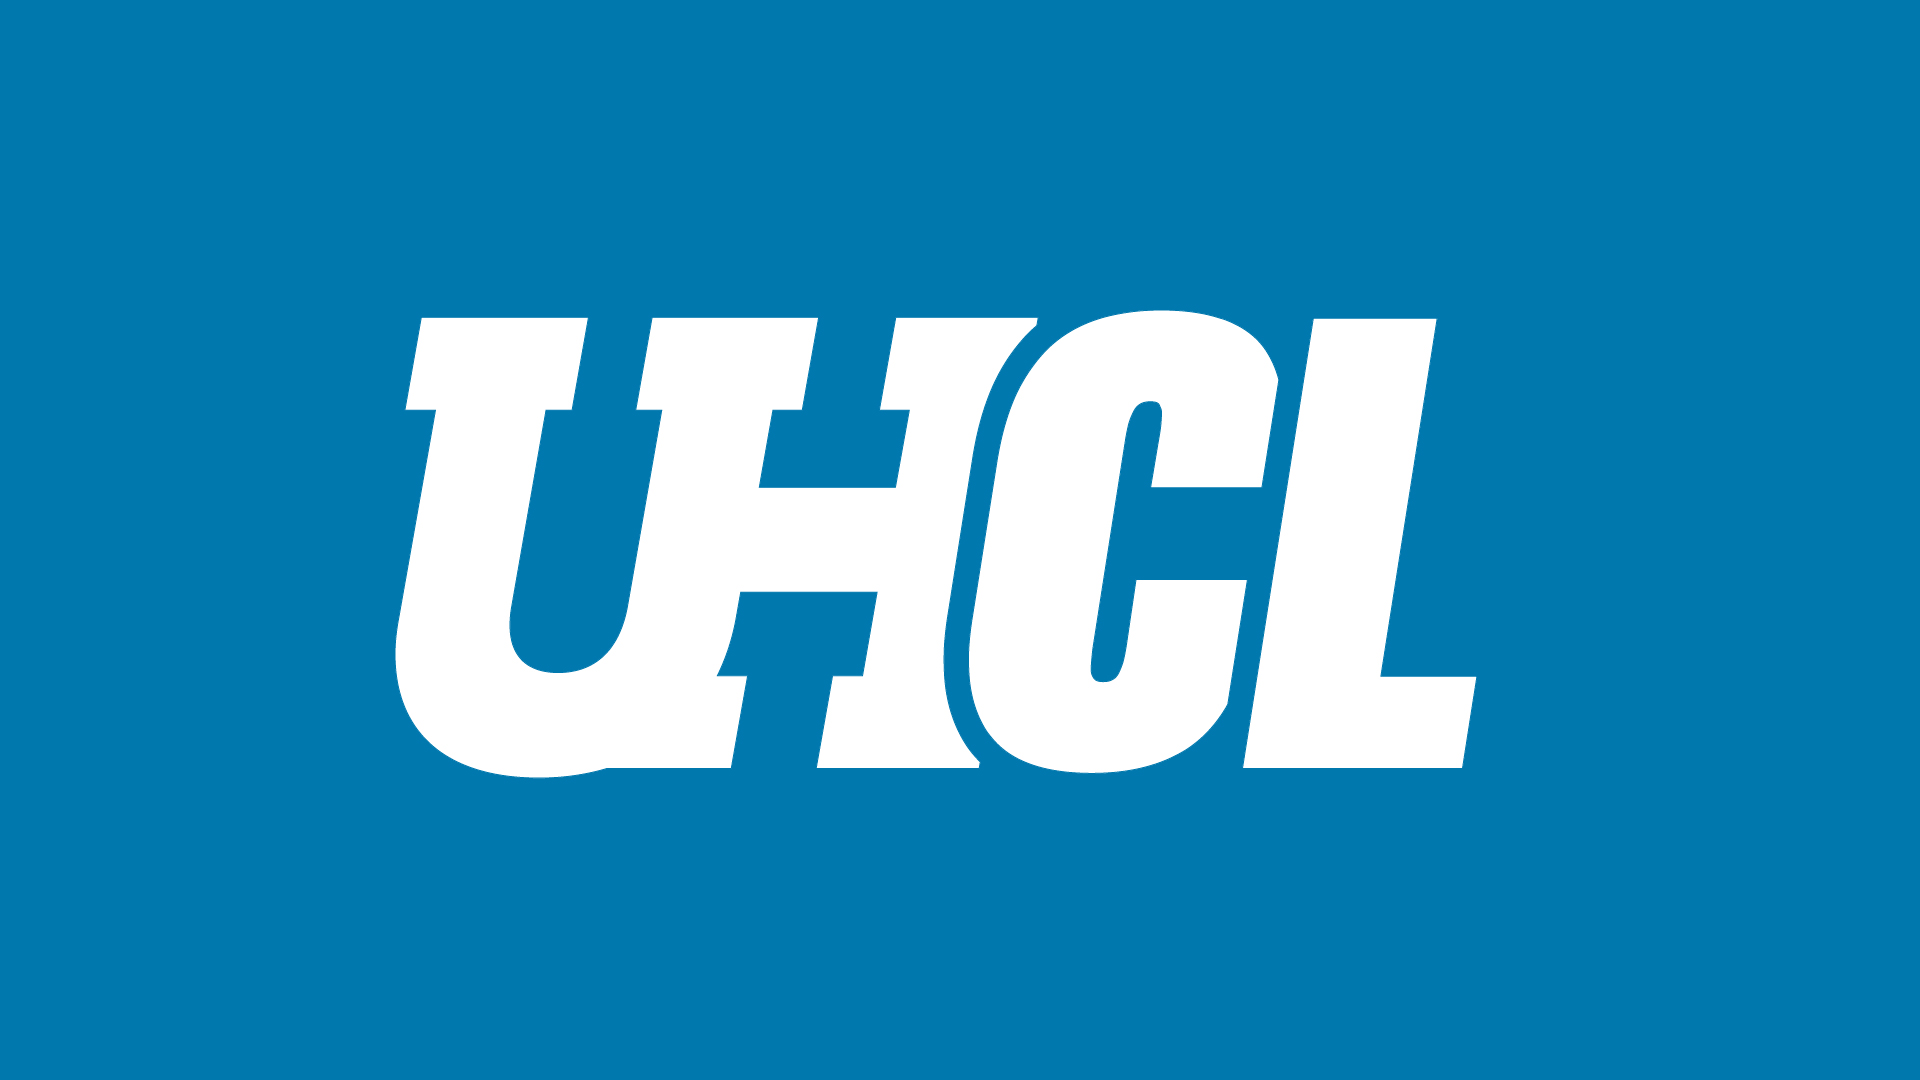 UHCL welcomes UHS Board of Regents to campus Feb. 28